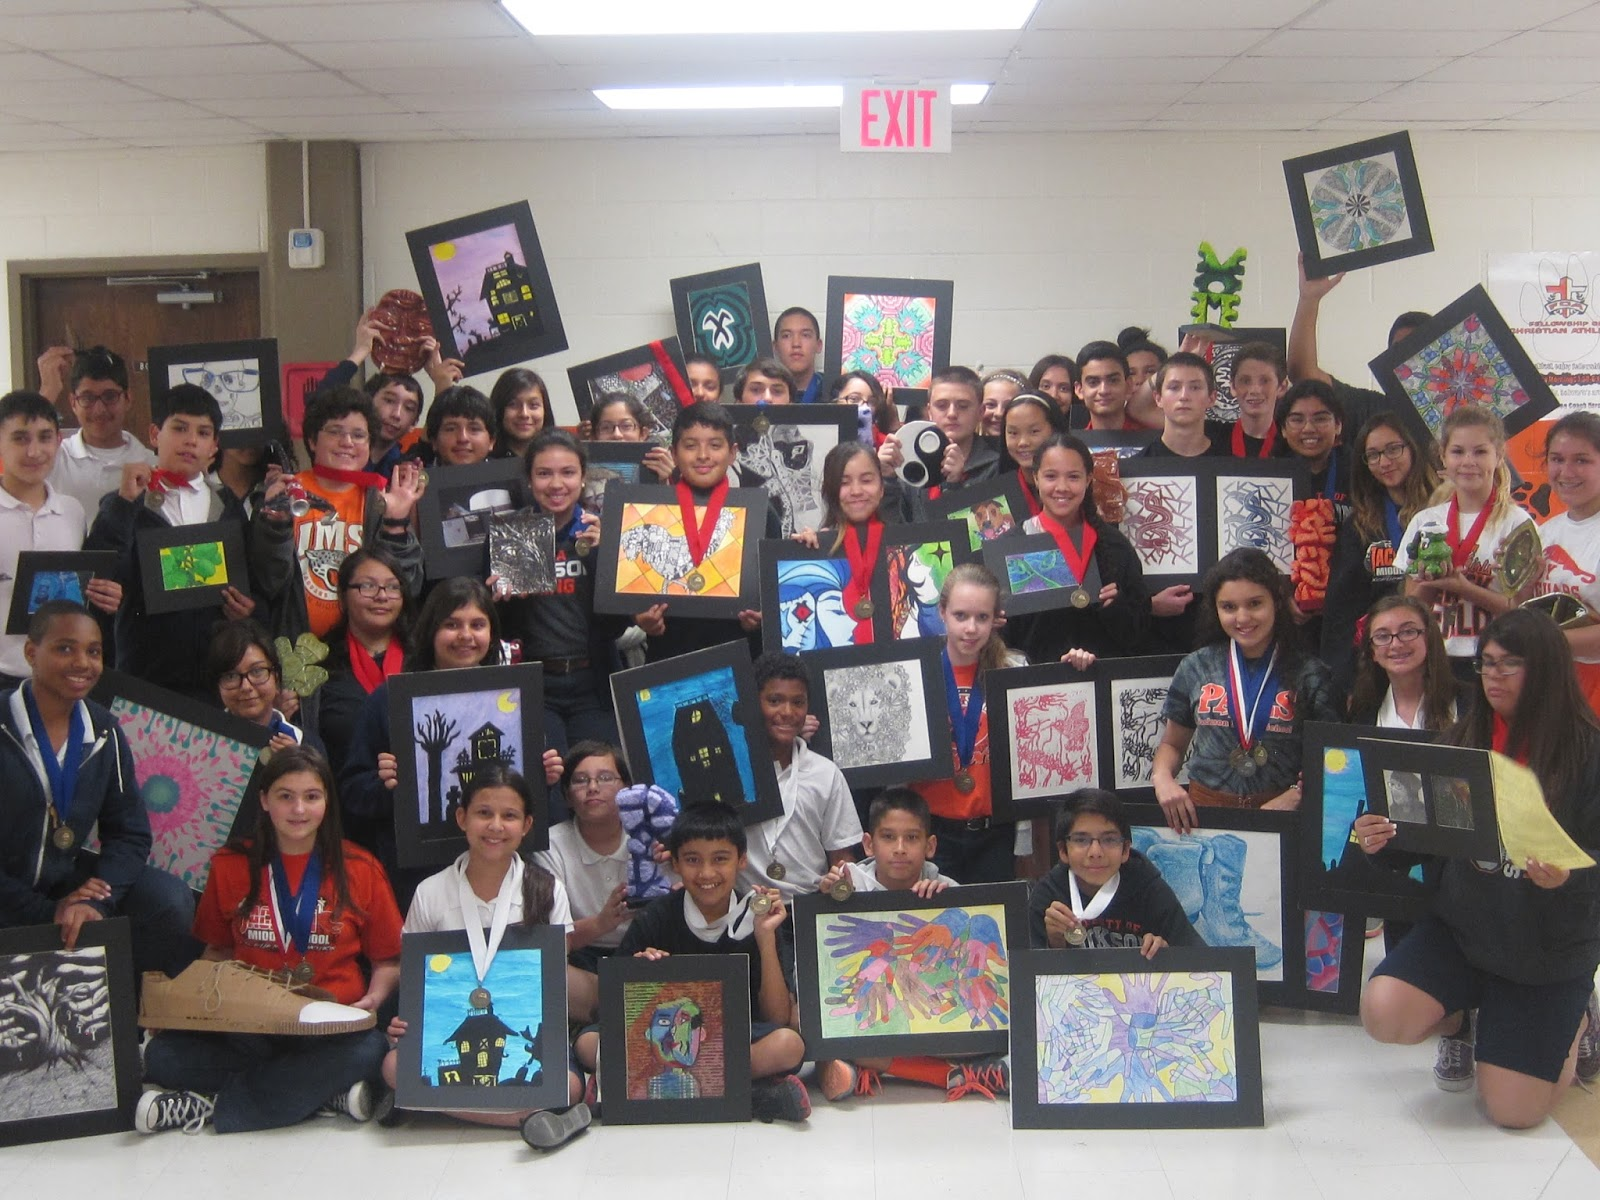 Live art breathe art annual region 20 west jr vase art we here at jackson ms are looking forward to a successful event with our very talented visual art students reviewsmspy